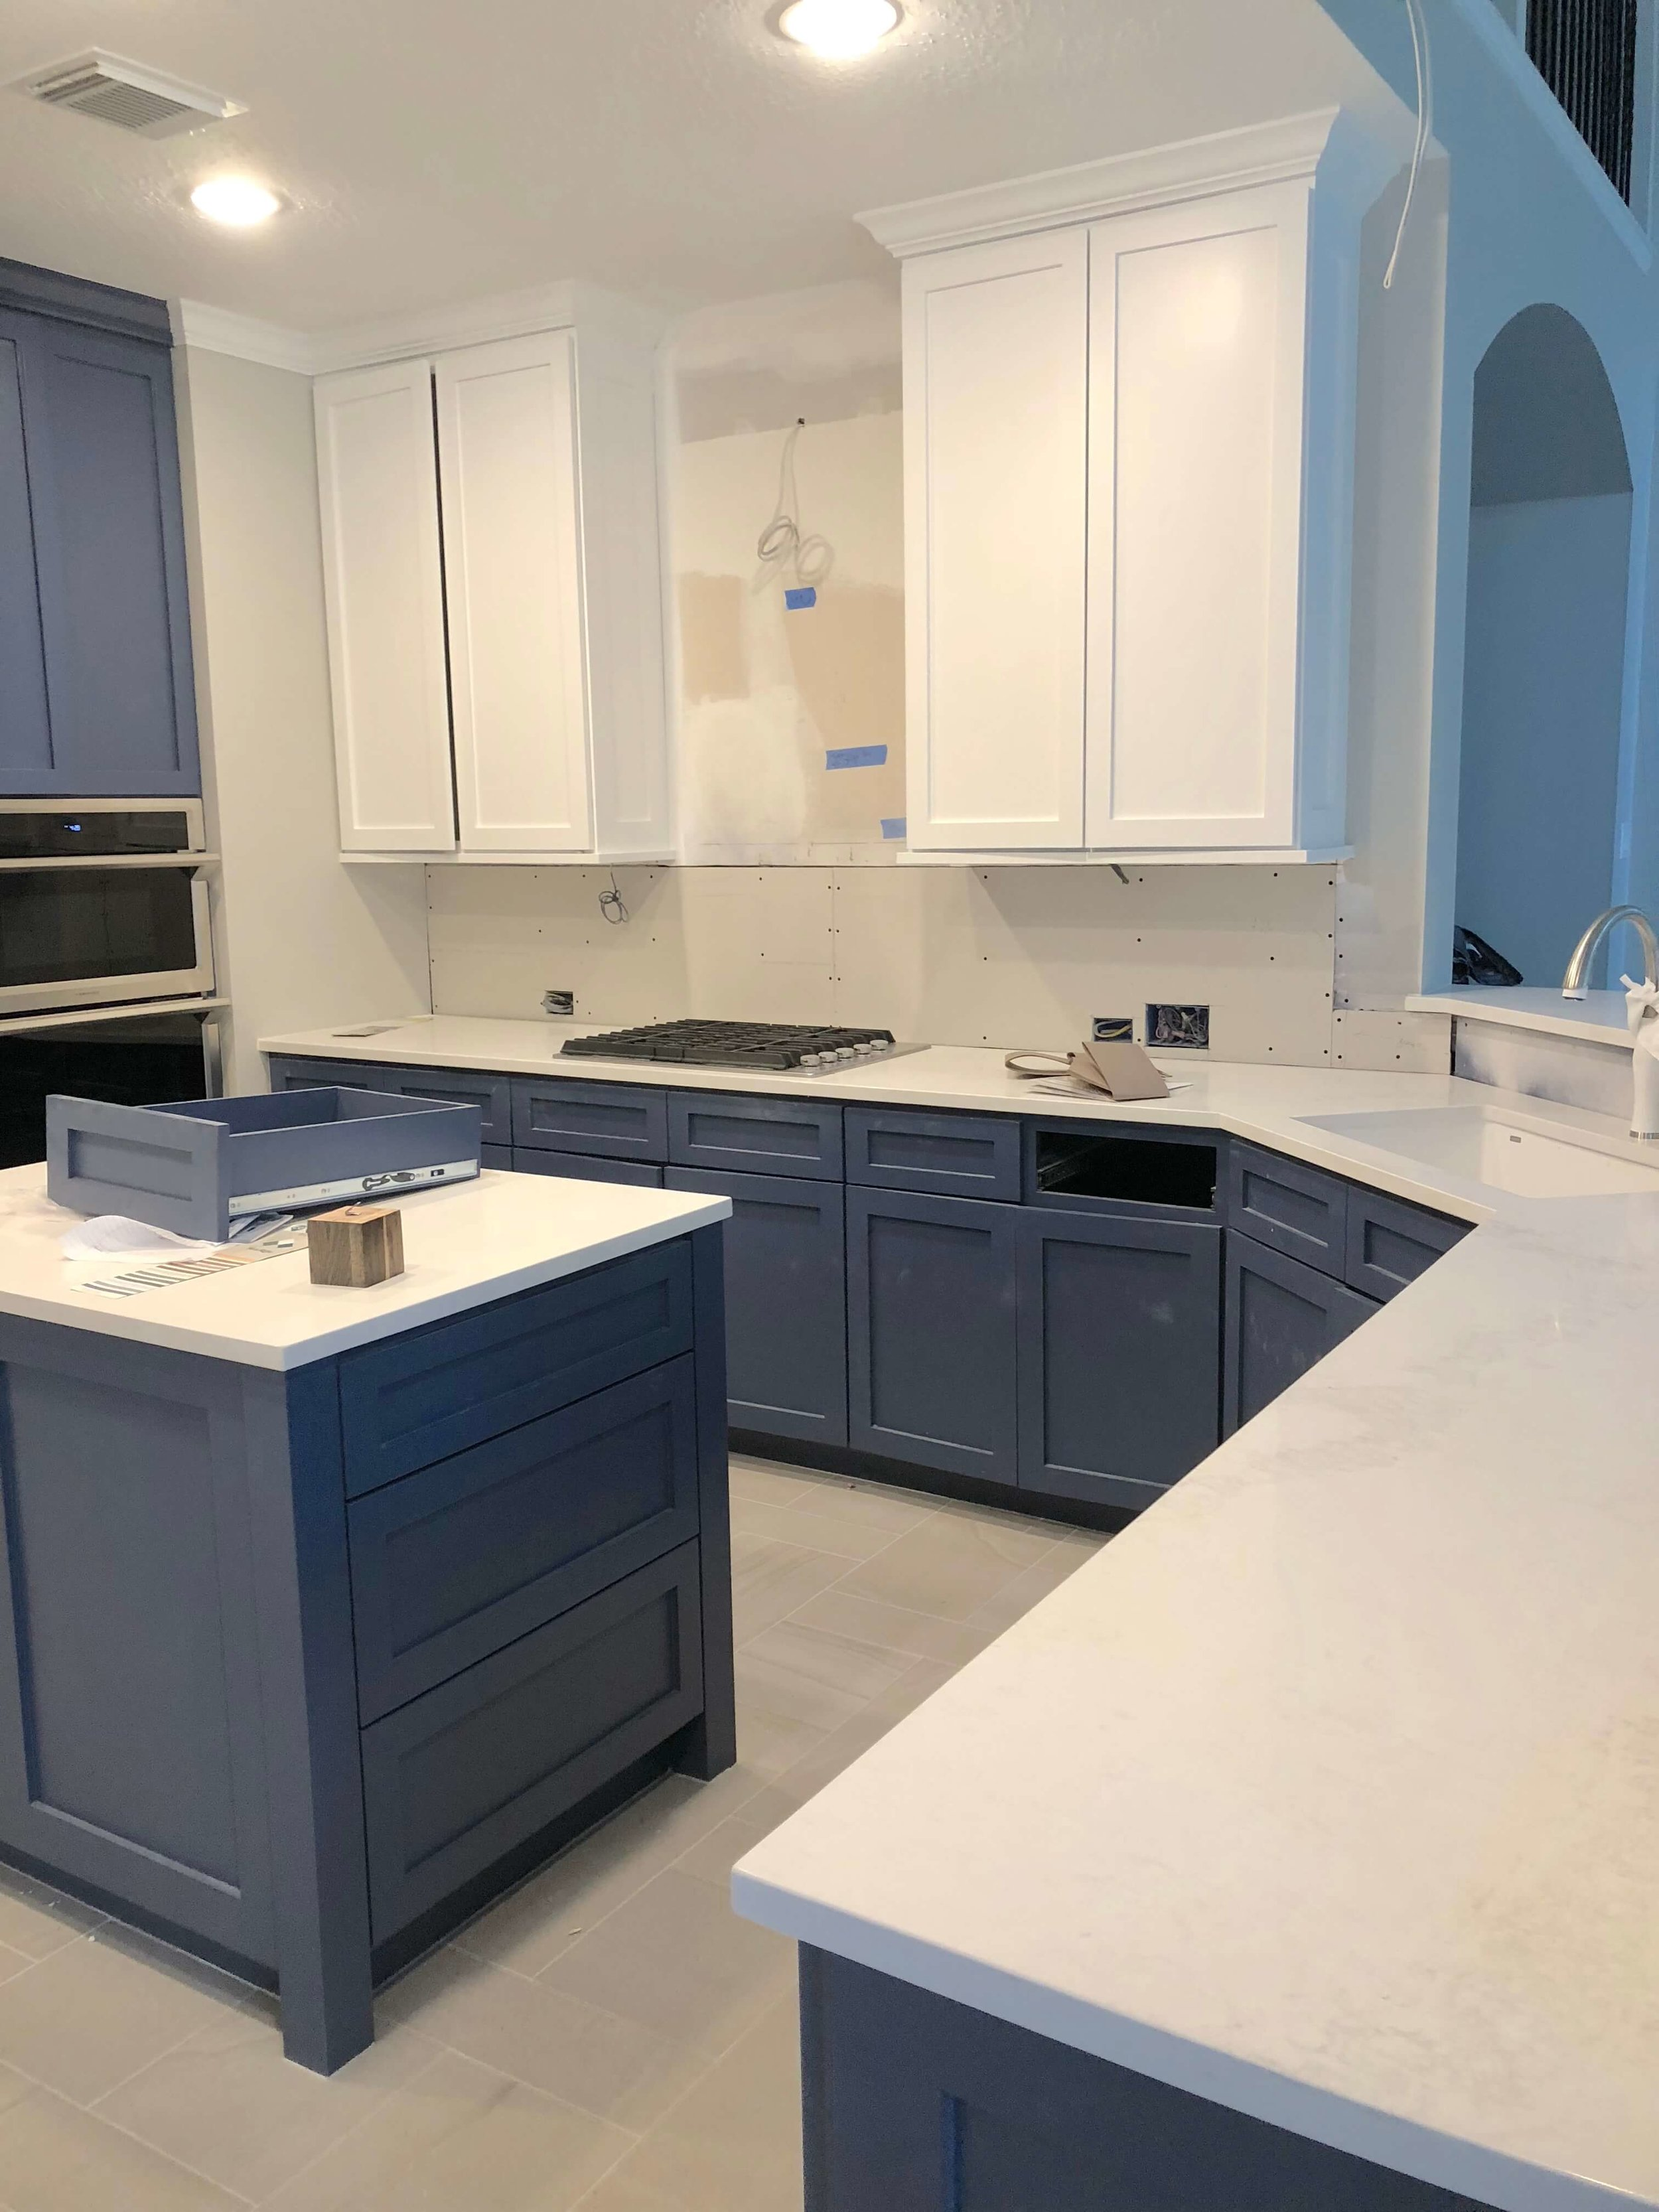 Remodeling Tips Moving Liance And